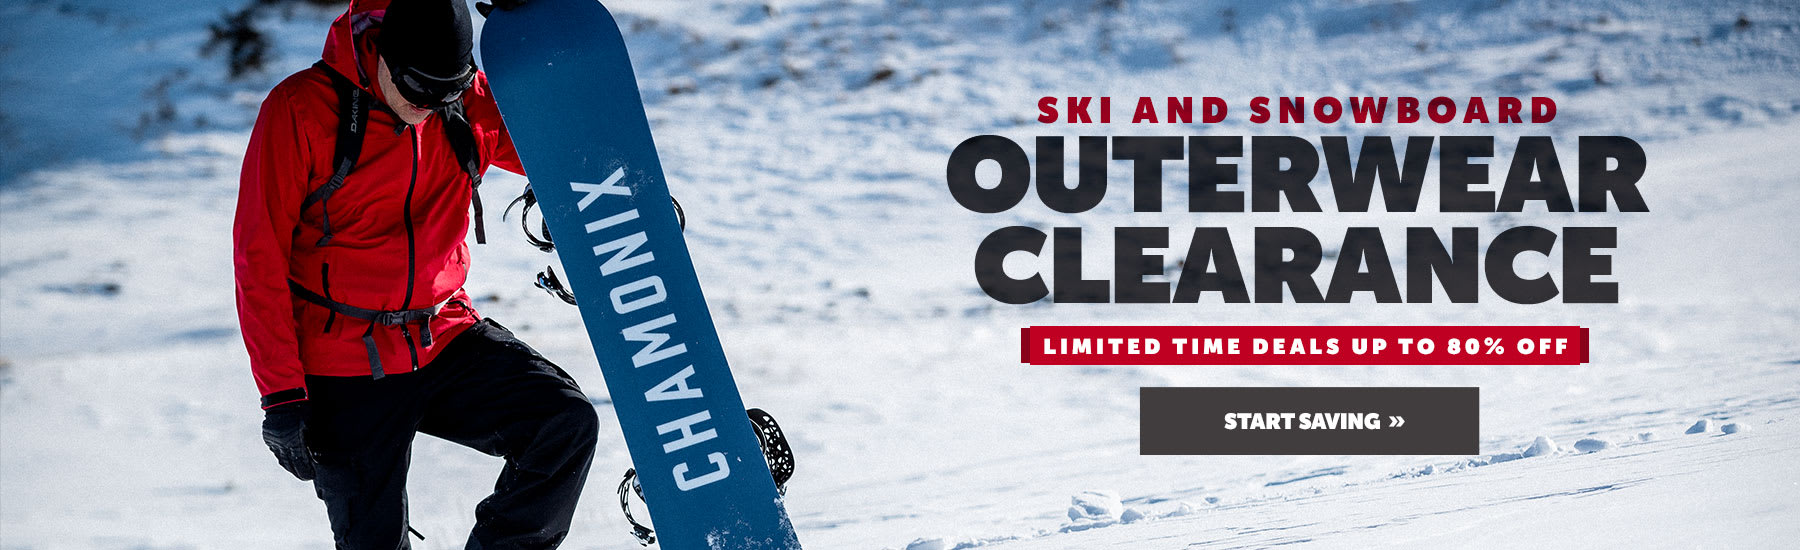 Winter Outerwear Clearance